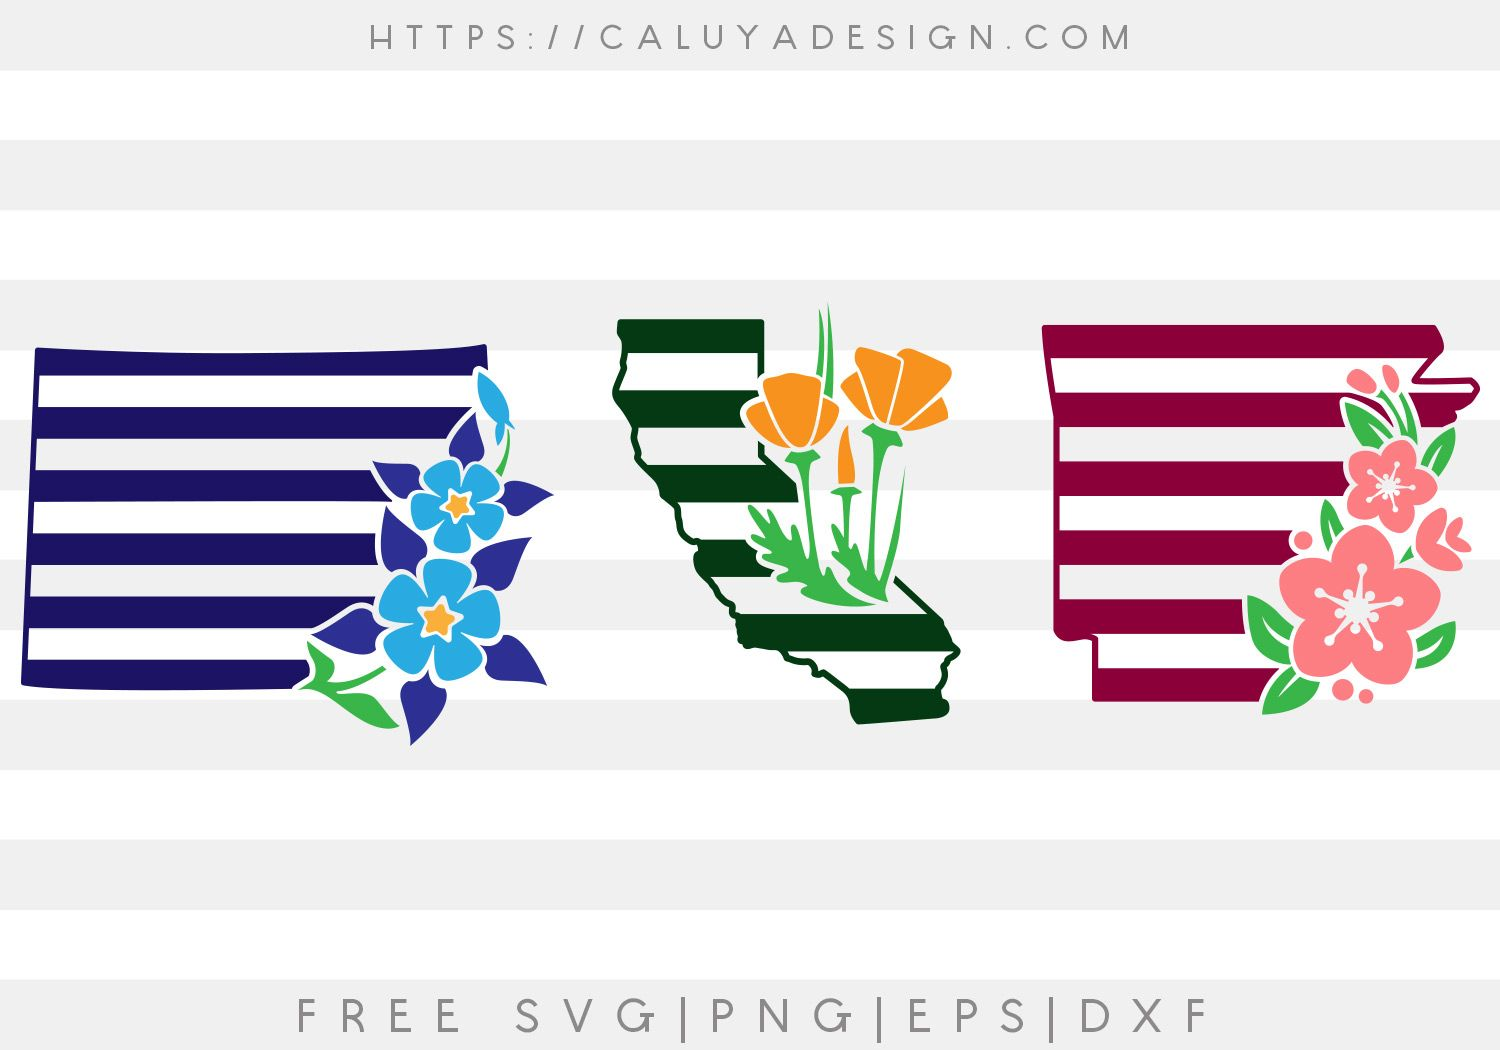 Free Arkansas California And Colorado State Svg Png Eps Dxf Svg Free Svg Eps